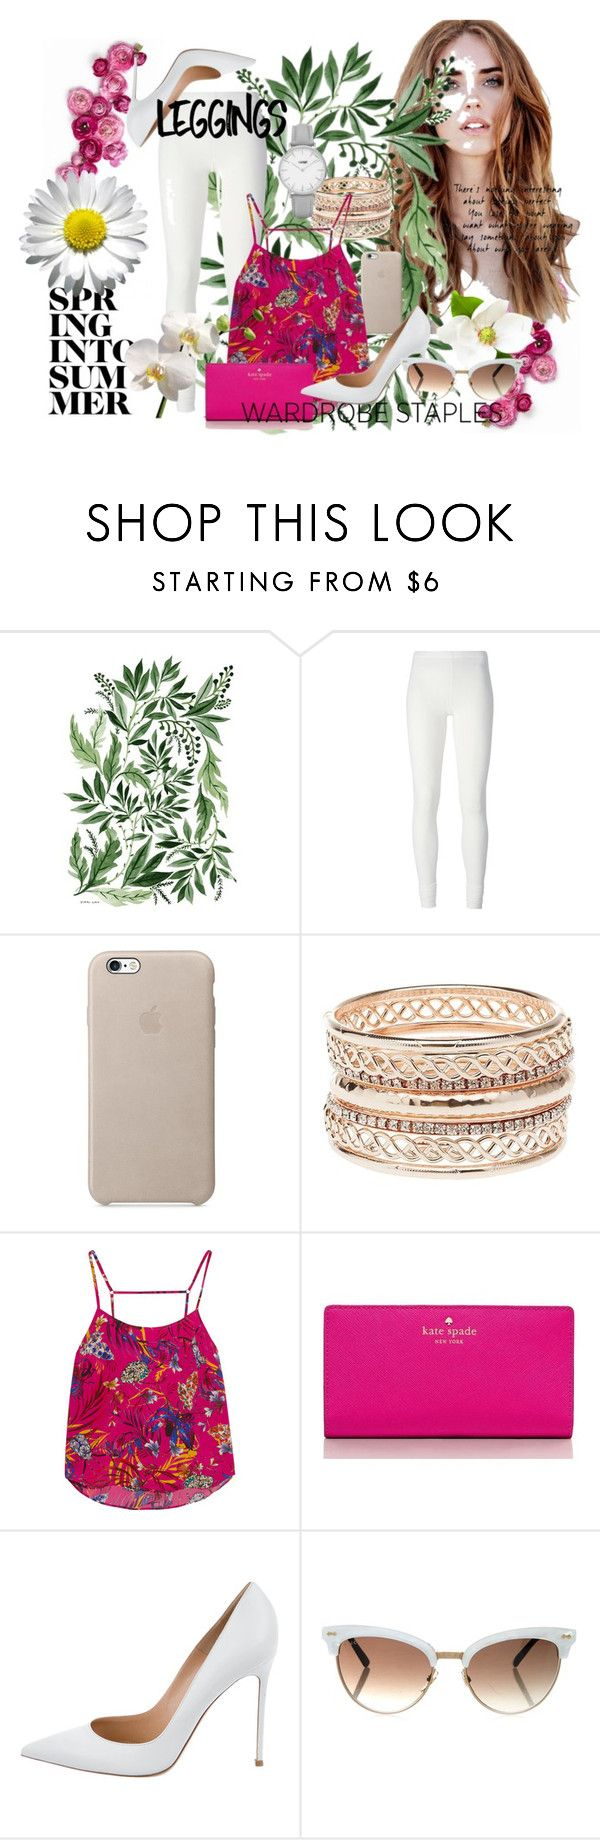 """Wardrobe Staples: Leggings Contest"" by mangofruit44 ❤ liked on Polyvore featuring Rick Owens Lilies, Charlotte Russe, Matthew Williamson, Kate Spade, Gianvito Rossi, Gucci, Topshop, Leggings and WardrobeStaples"